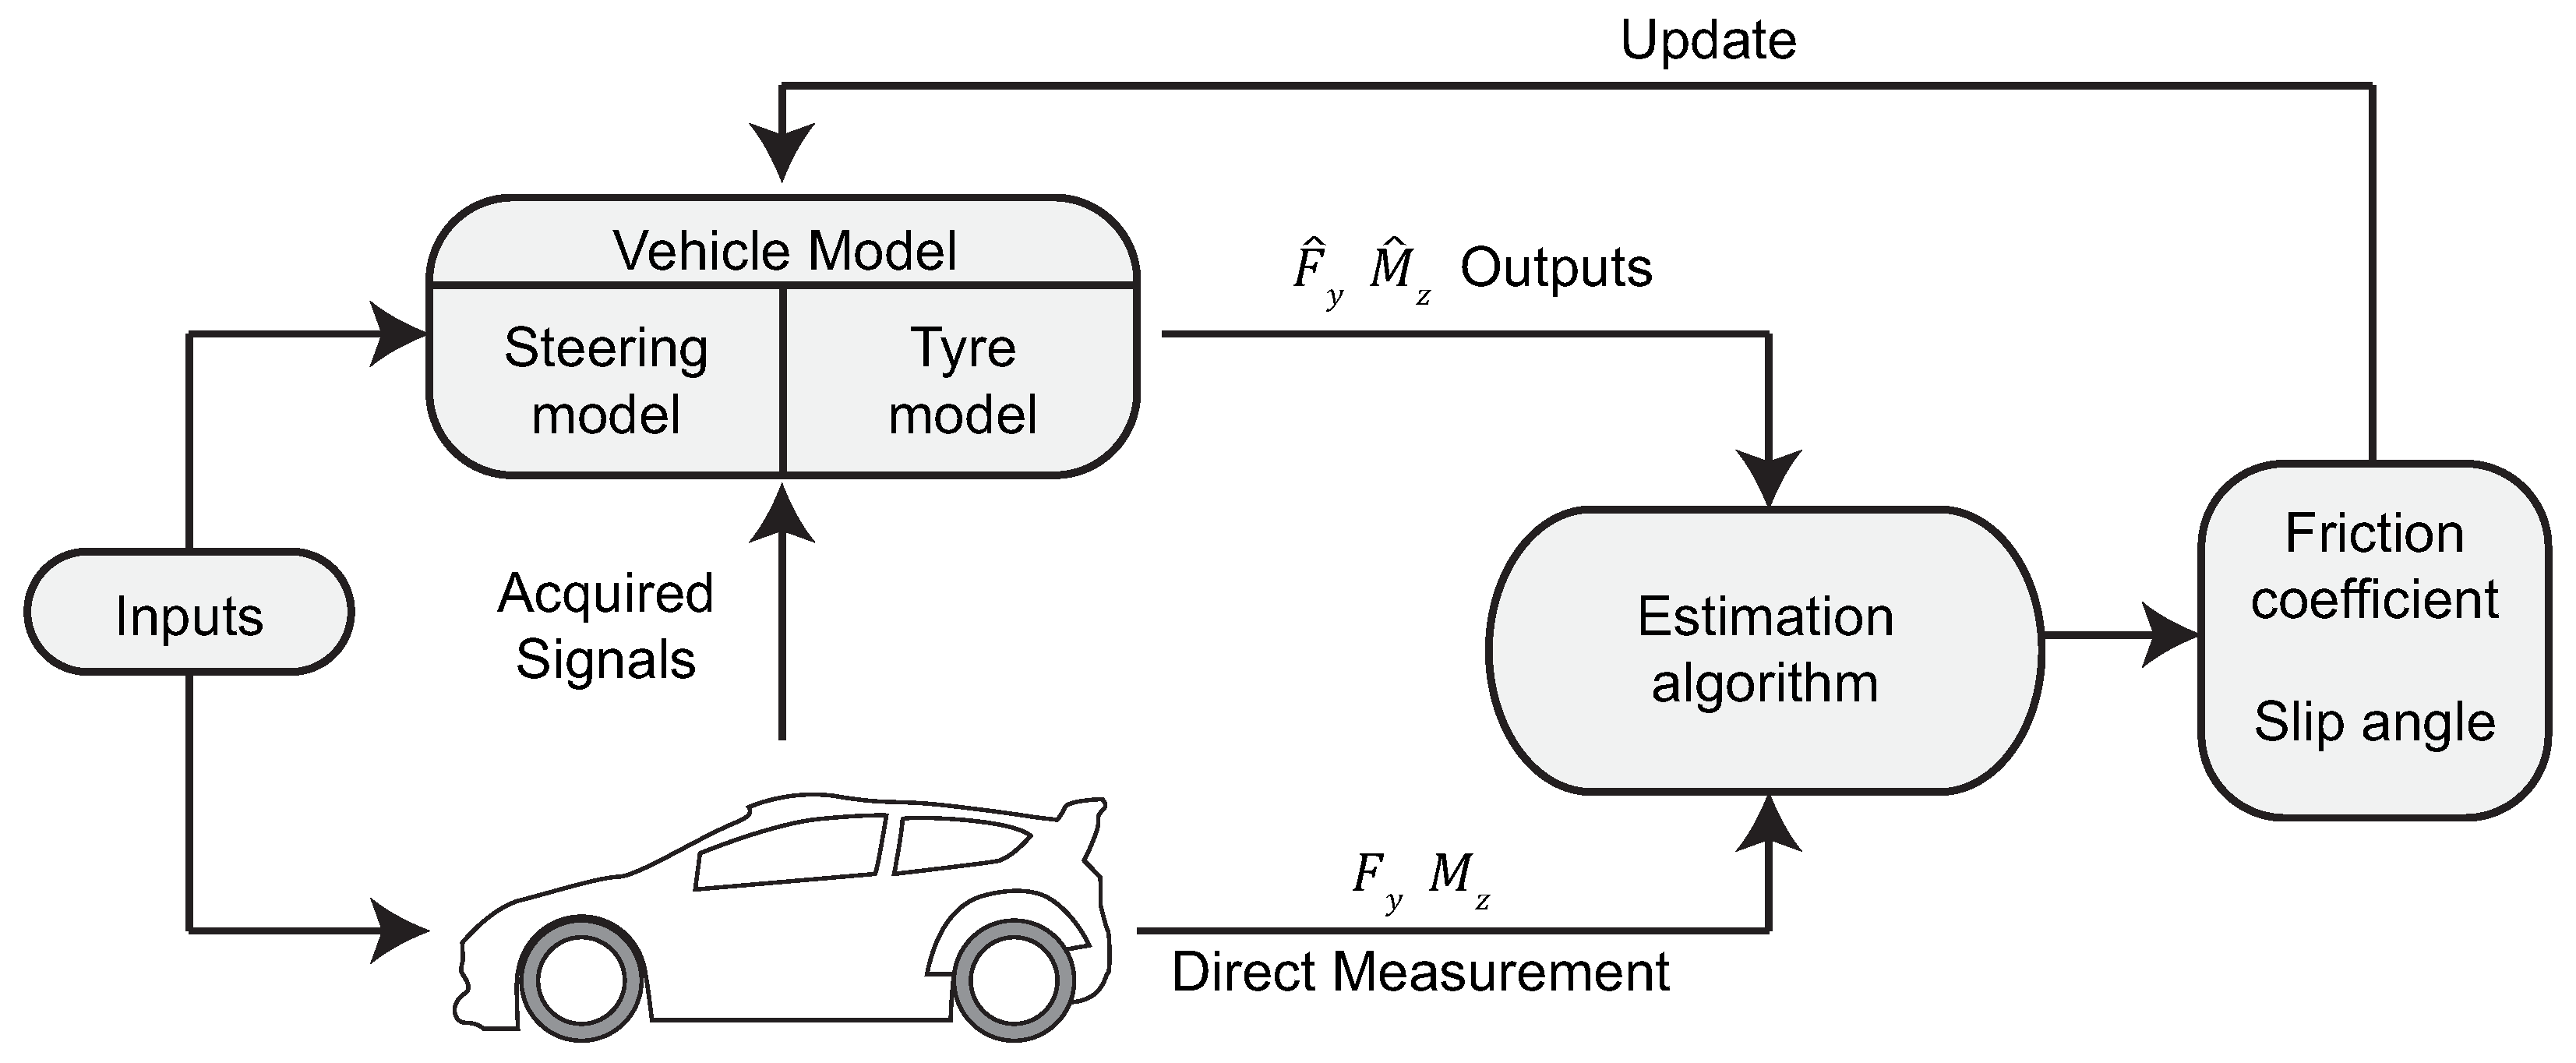 a coefficient of friction estimation monitoring Presented a method for detecting the coefficient of friction by monitoring the tyre li, k tire-road friction coefficient estimation based on the resonance.